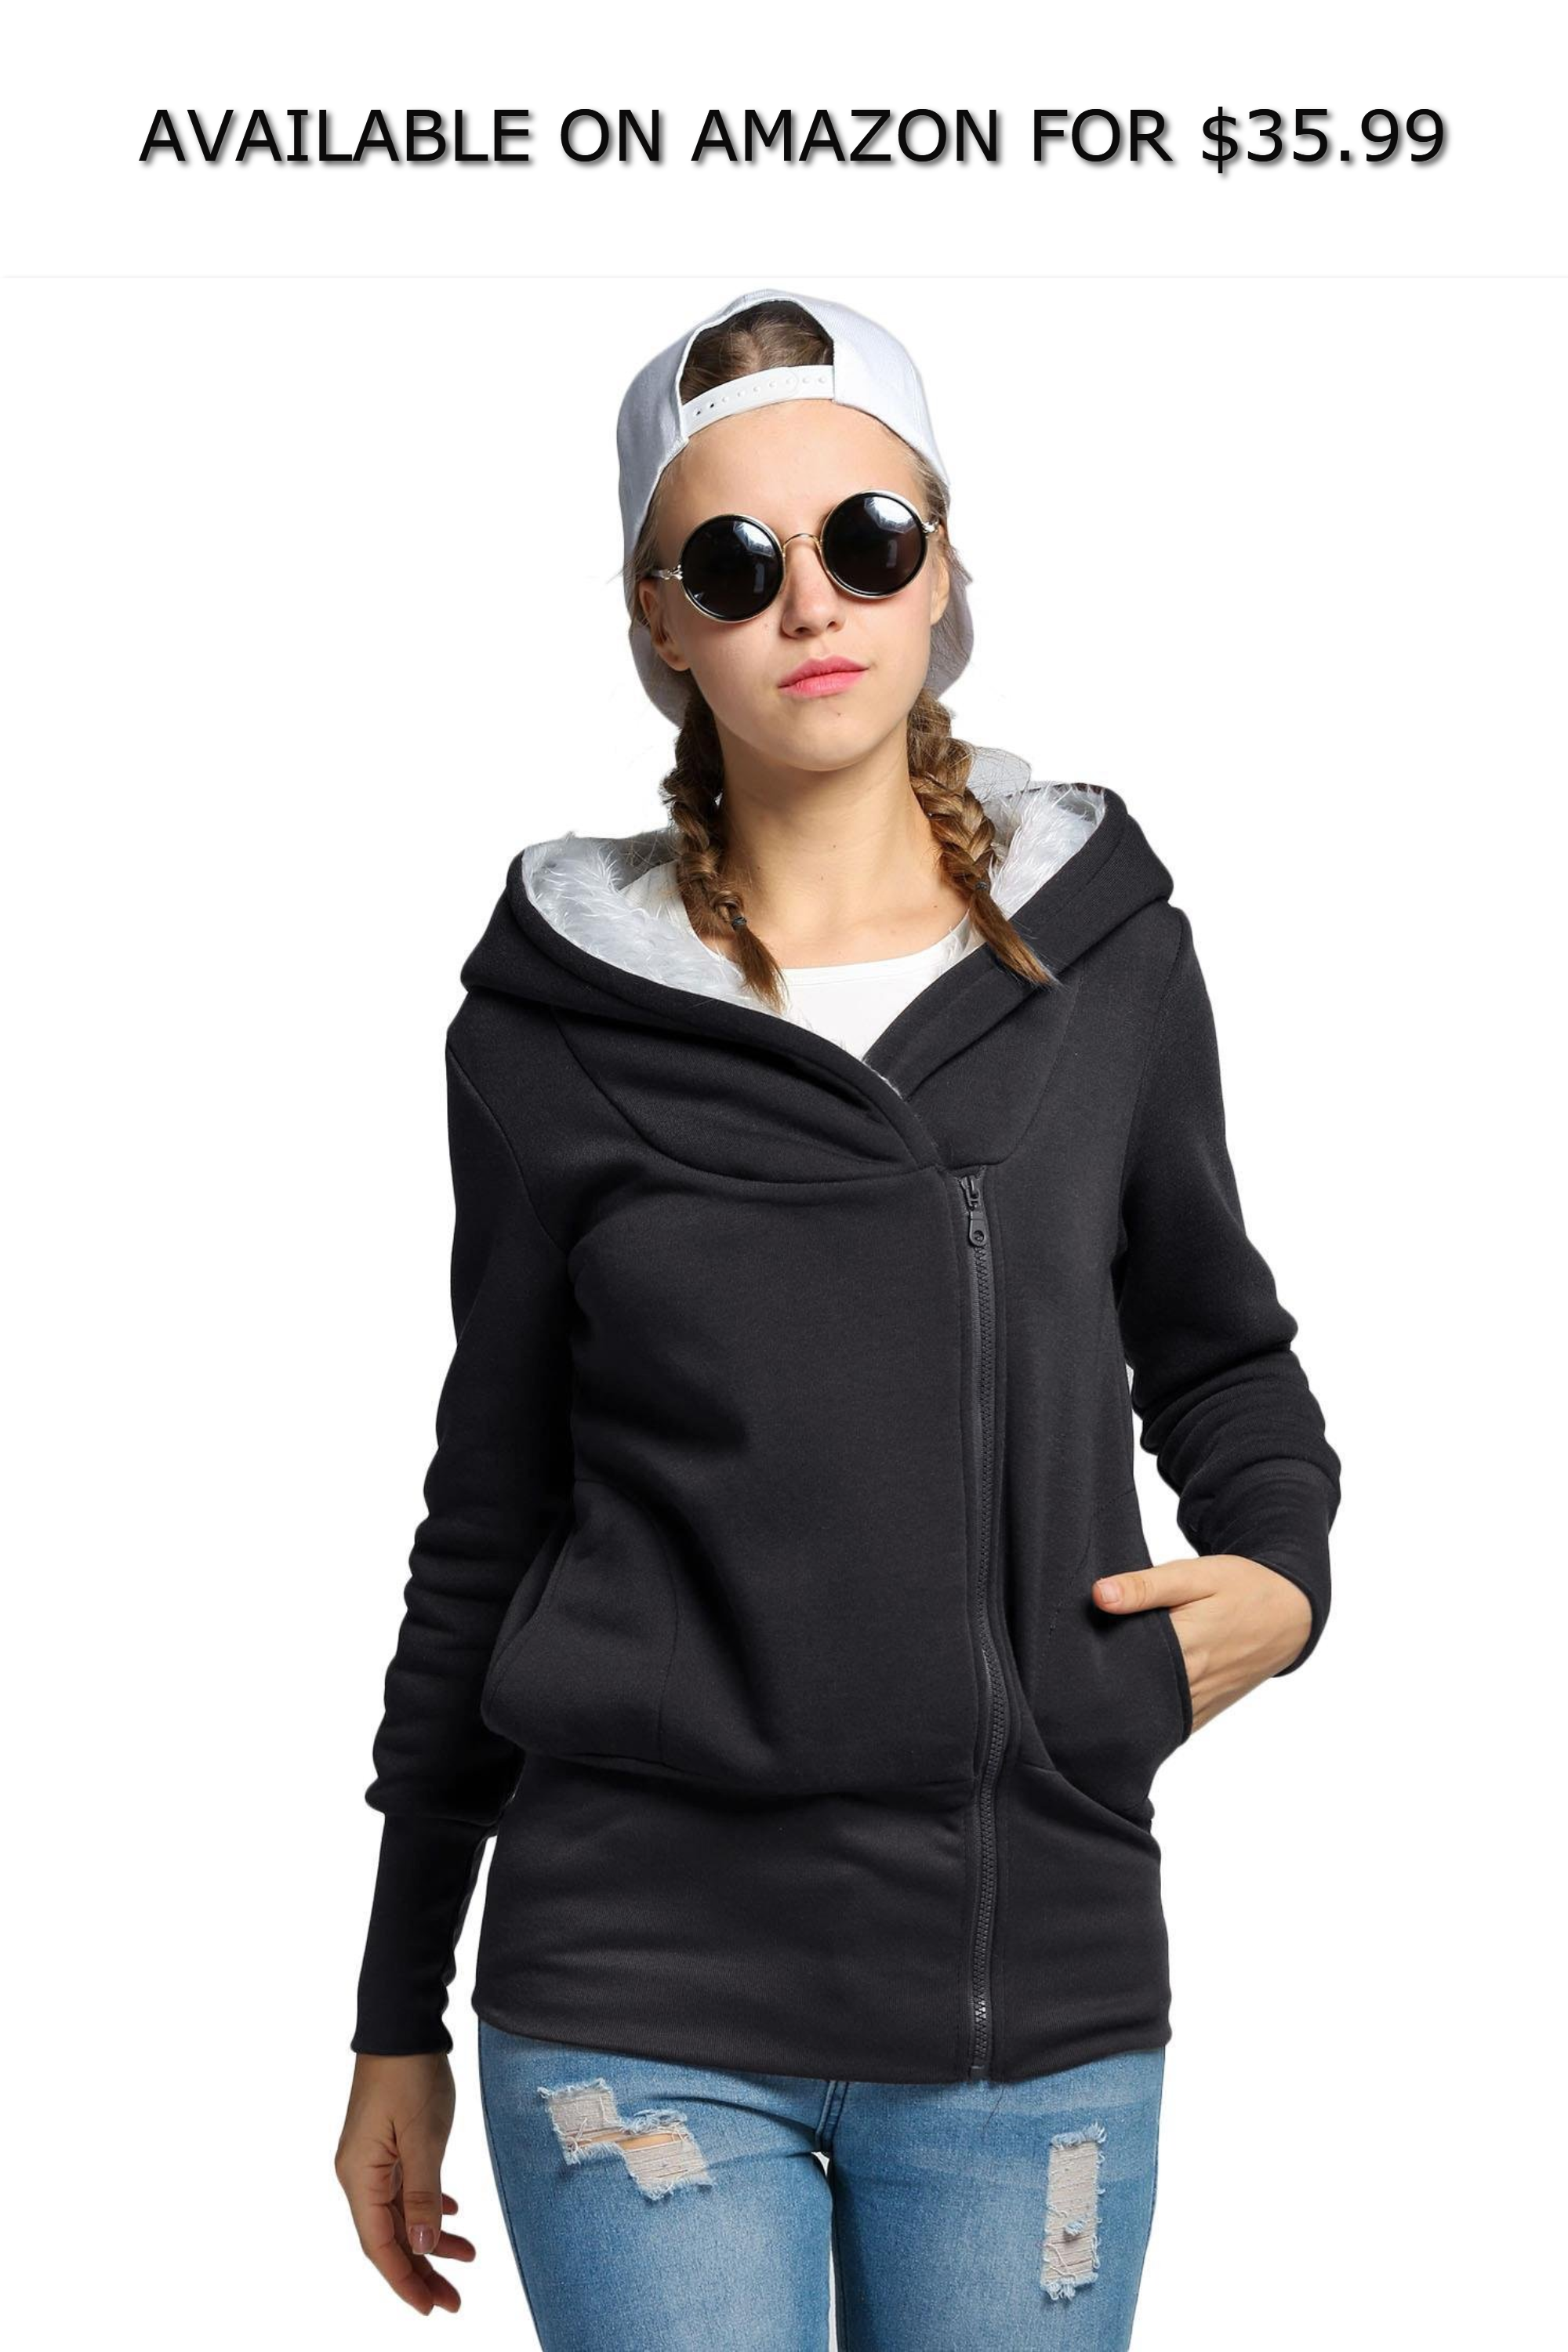 Women Fashion Casual Large Warm Hood Long Sleeve Solid Pullover Hoodies ◇  AVAILABLE ON AMAZON FOR   35.99 ◇ Material-- Made of durable fabric 46df6cca58